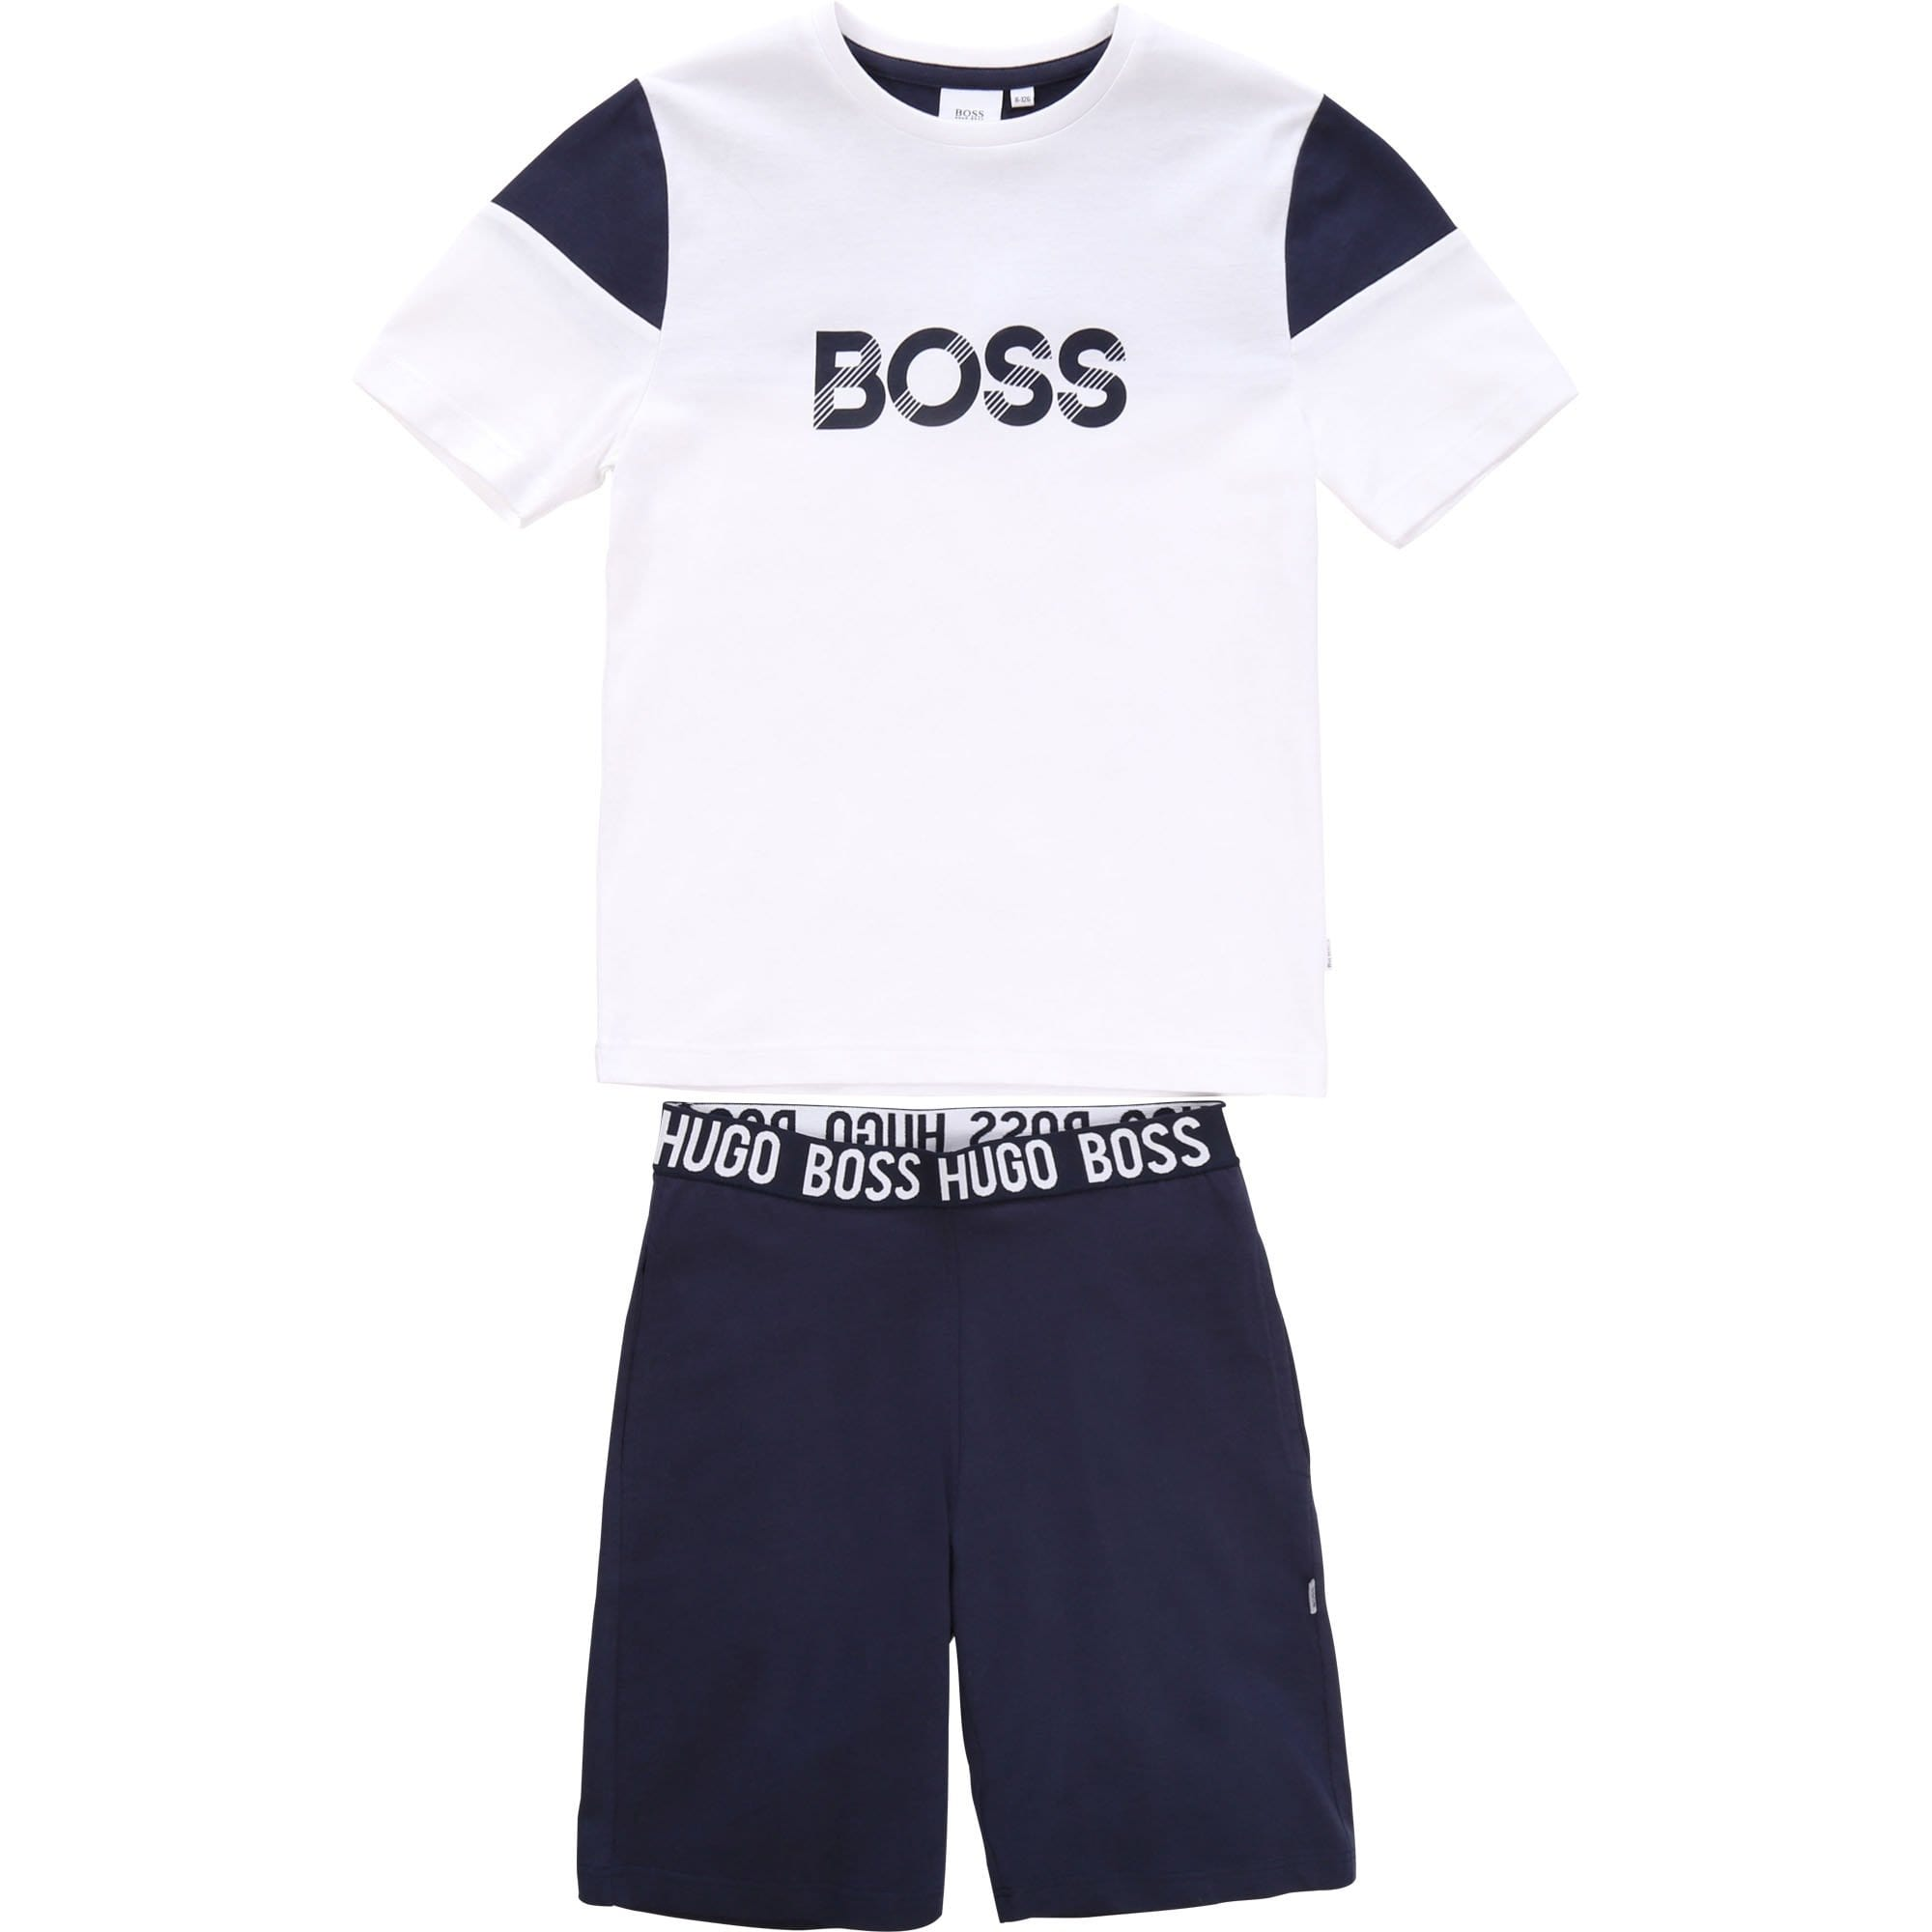 Hugo Boss PJ Set White/Navy J28072/N68